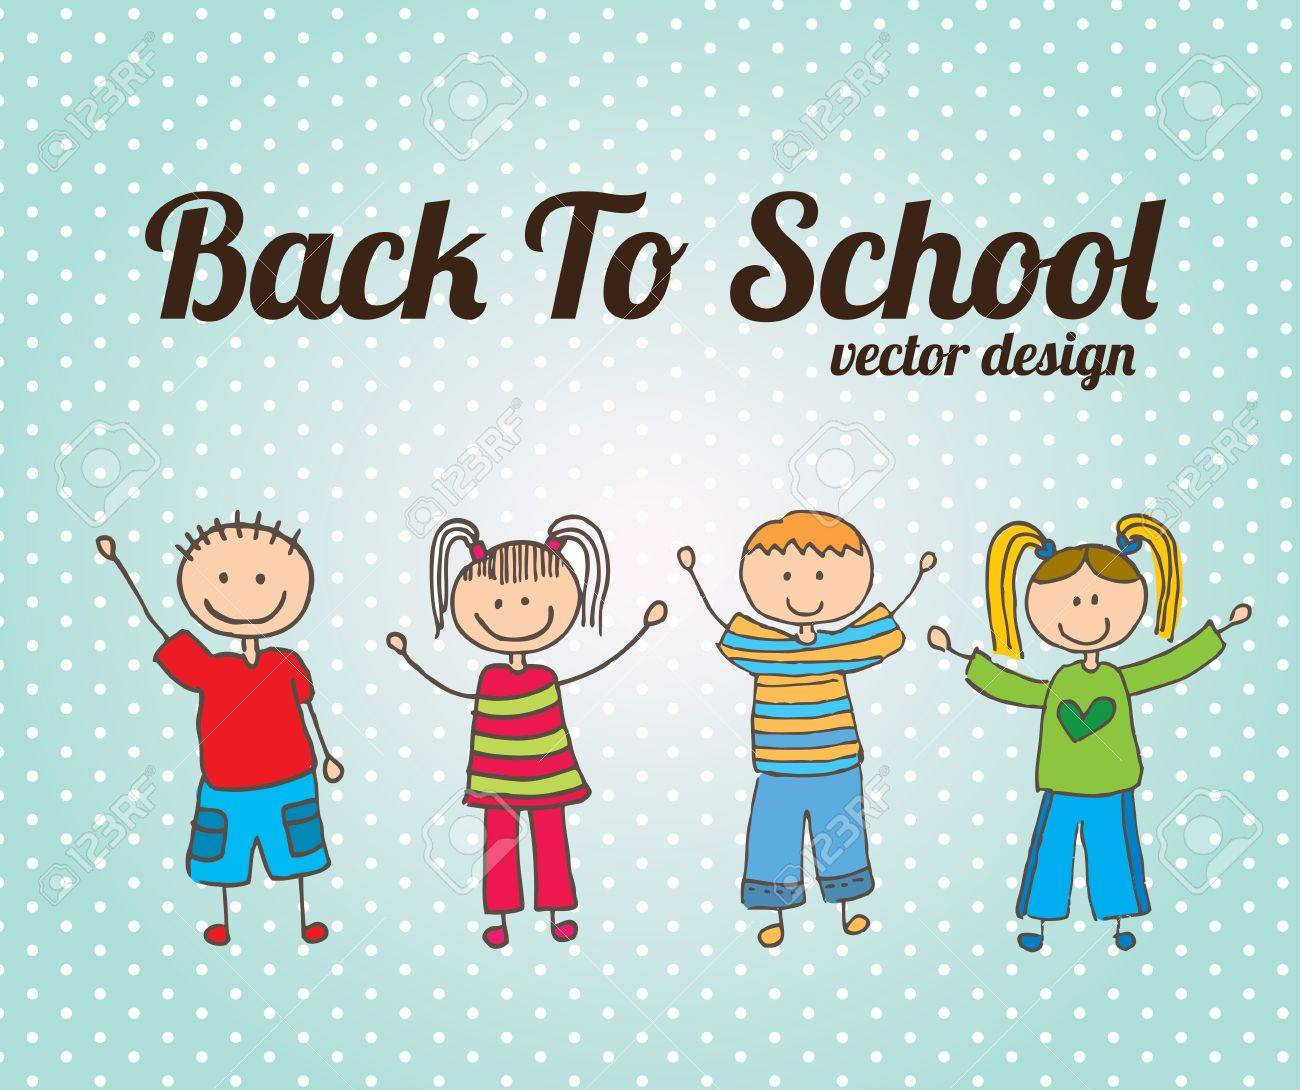 back to school design over dotted background vector illustration Stock Vector - 20498762